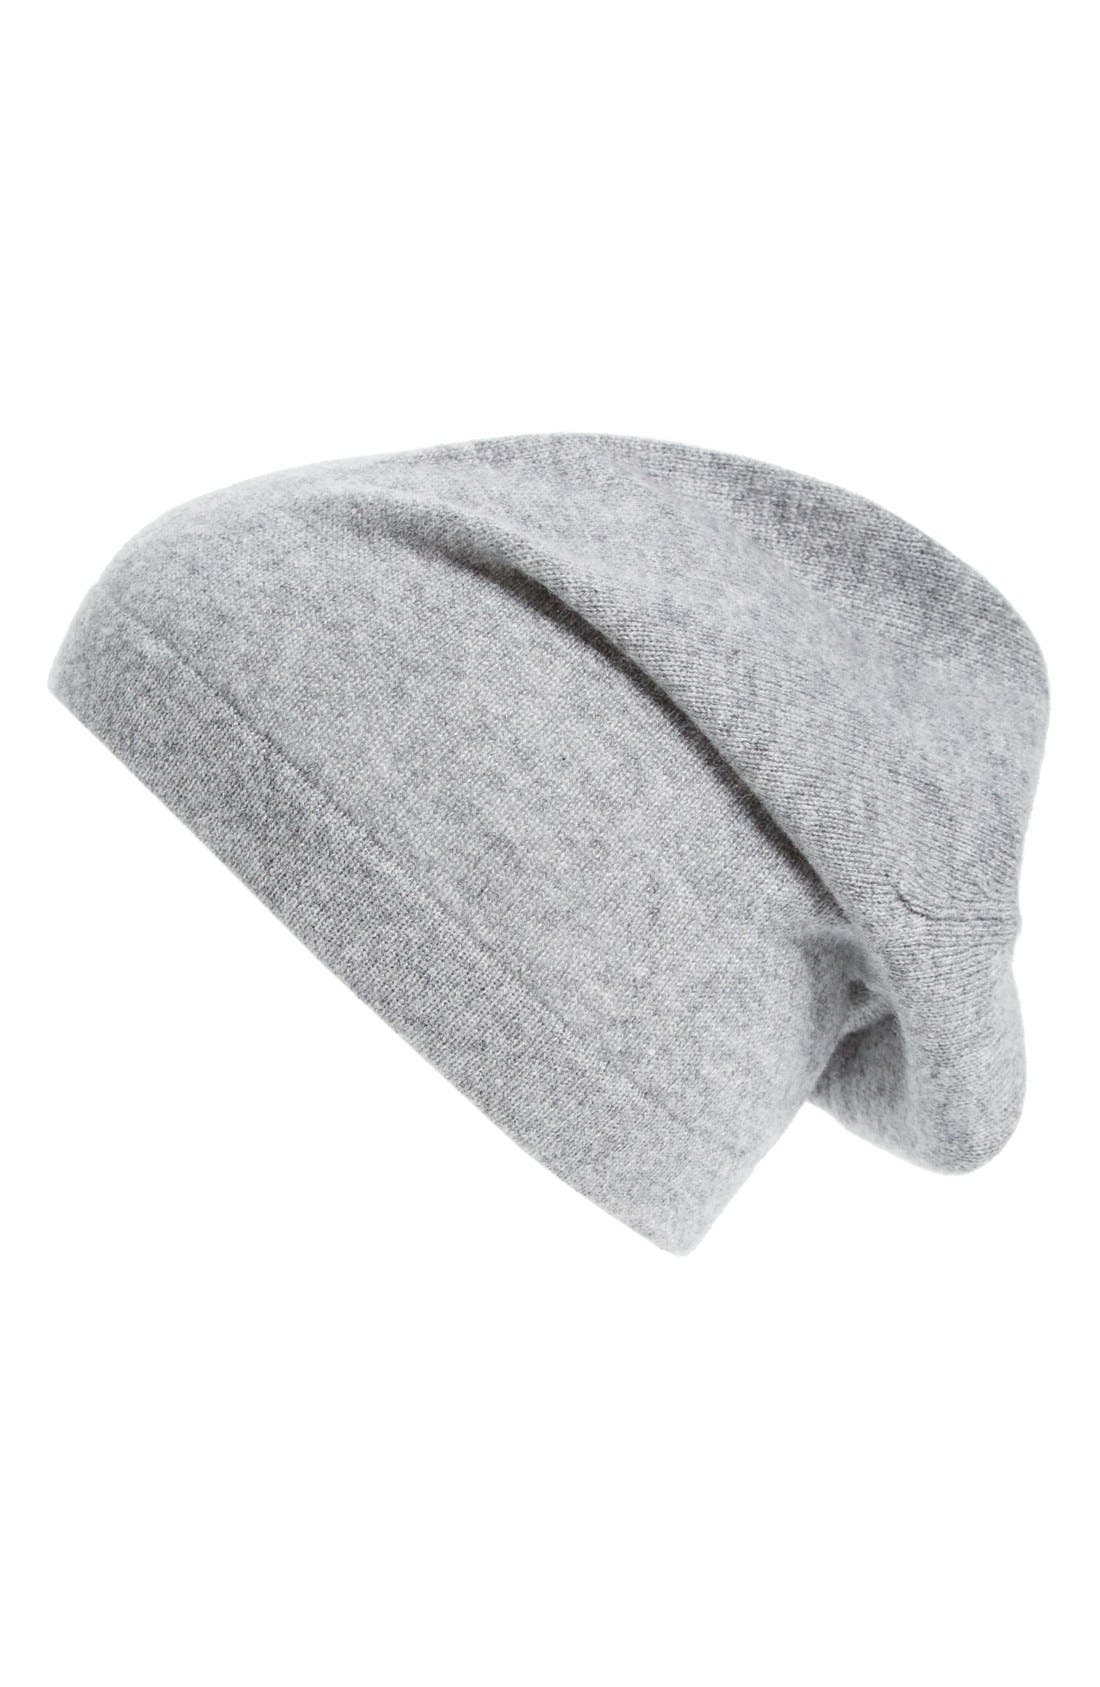 Main Image - The Rail Cashmere Knit Cap